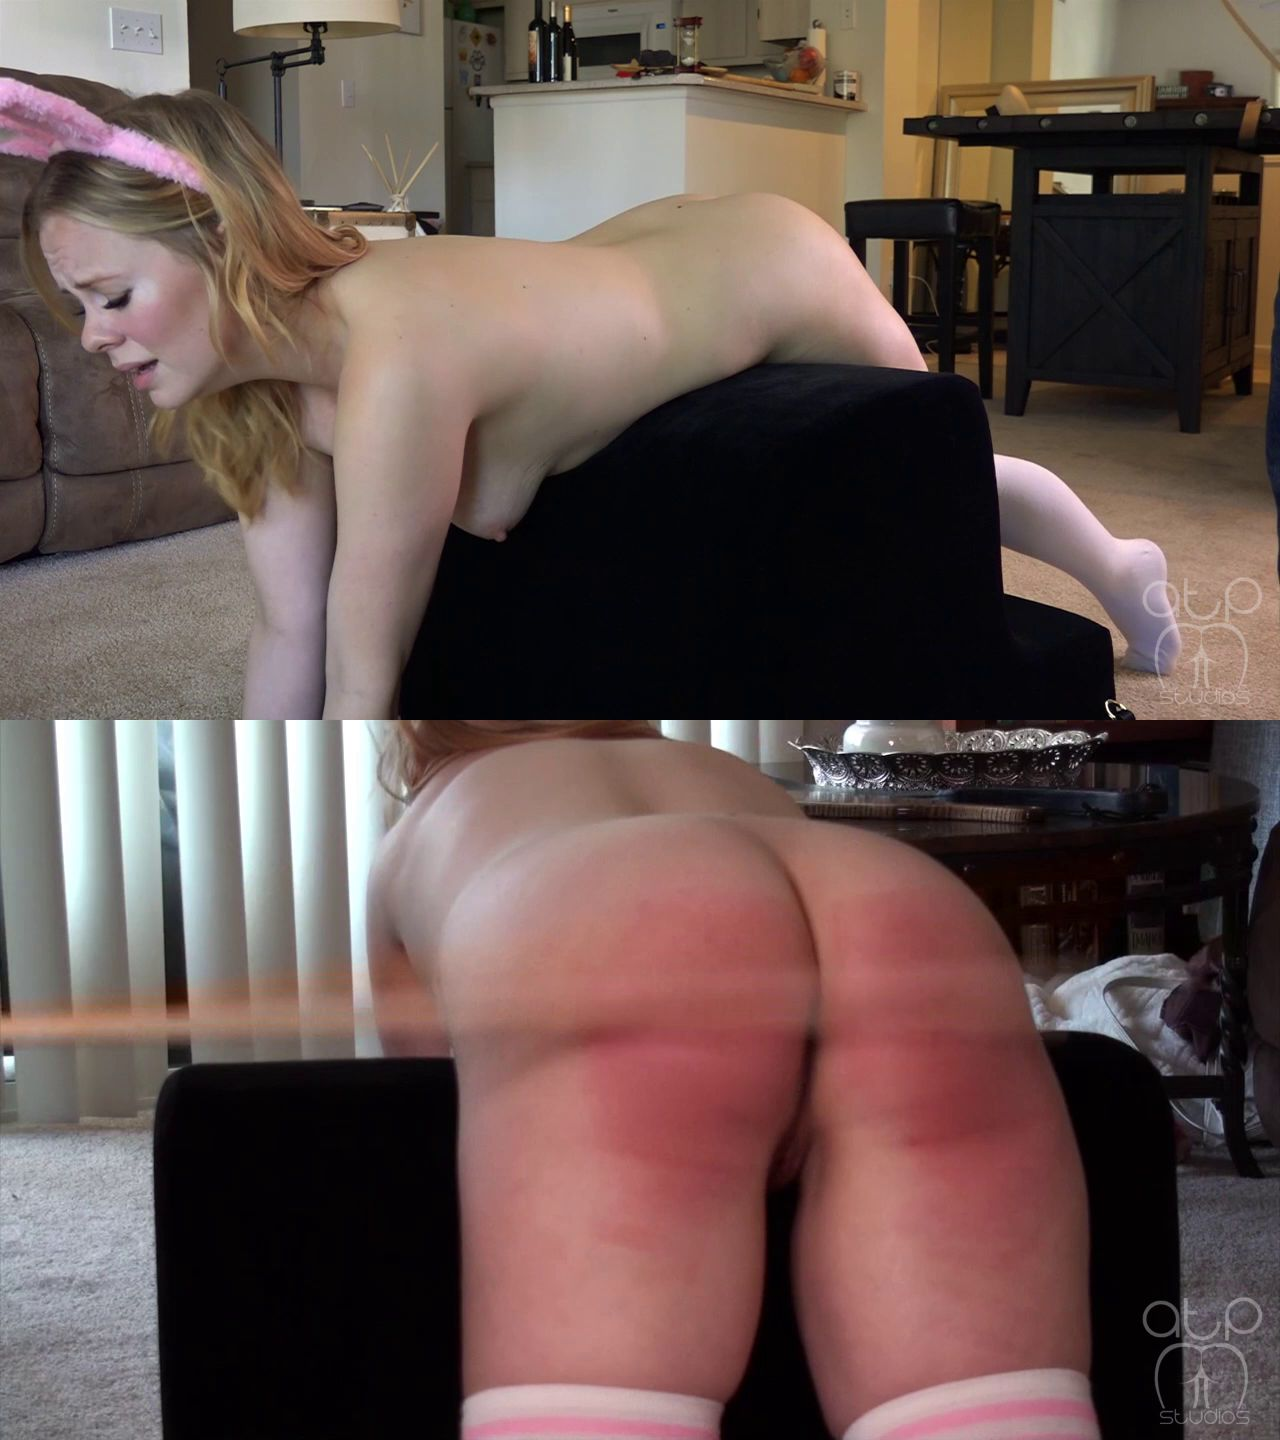 Assume The Position Studios – MP4/HD – Stevie Rose, The Master – Slut Bunny Strapped Paddled And Caned Nude (Release date: Jul. 15, 2021)